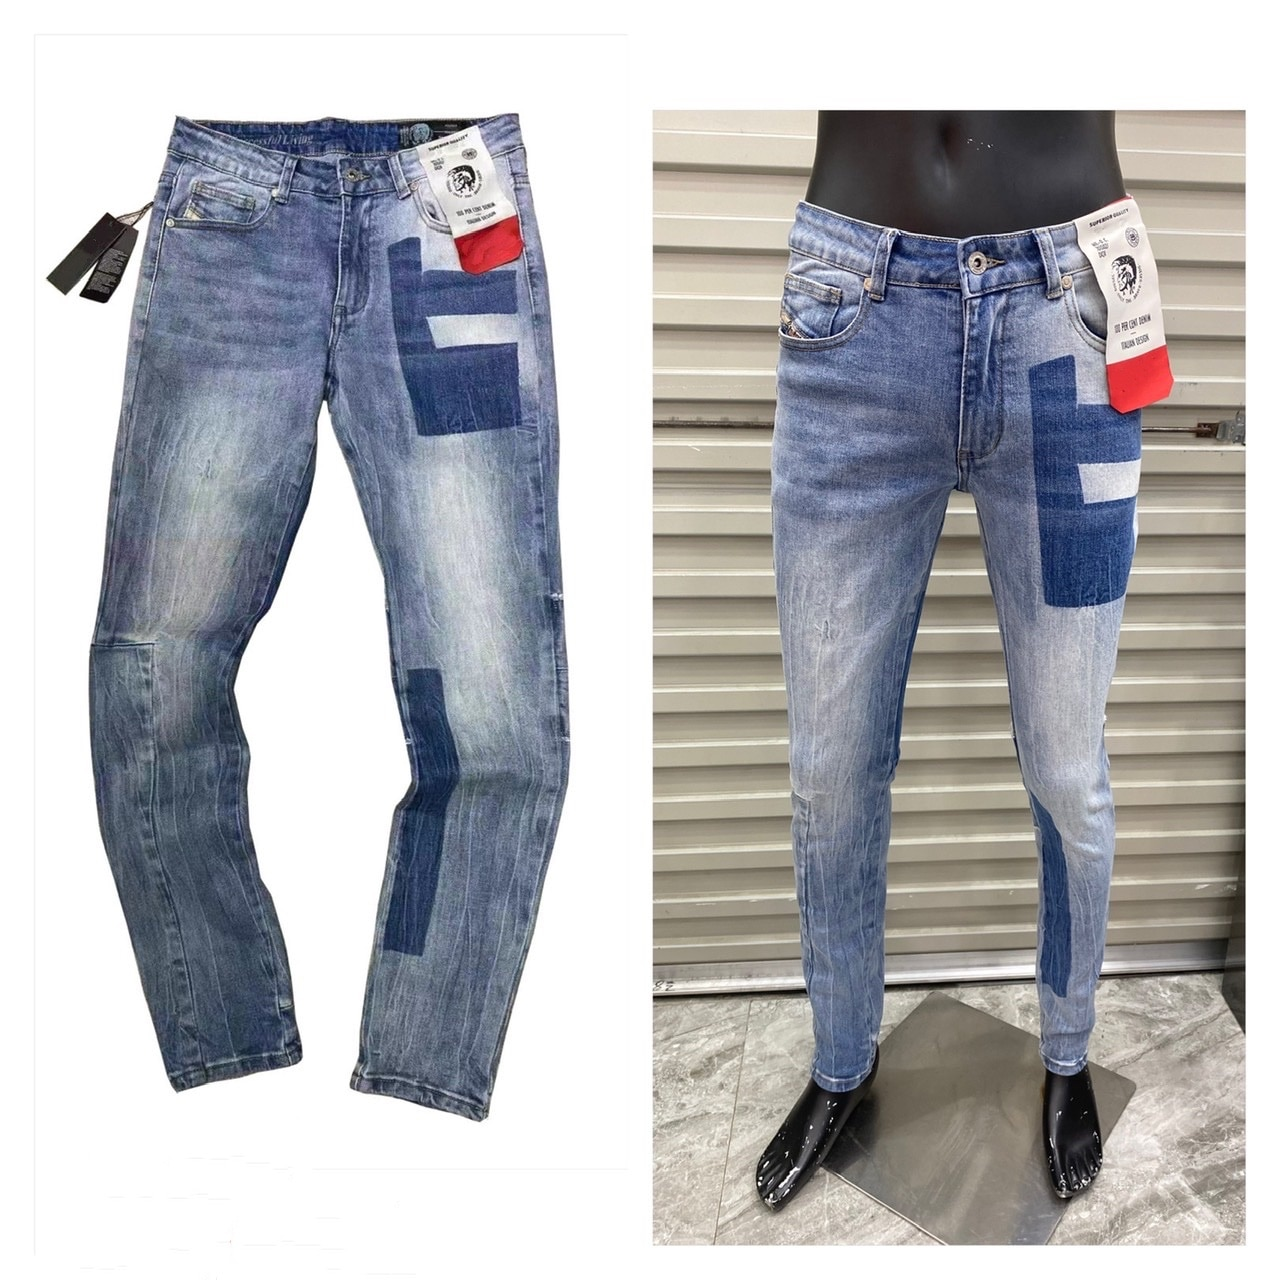 20201 New Casual Style Breathable Top Quality Fashion Men Pants Warm Jeans Straight Leisure Mid Waist Men Trousers K959